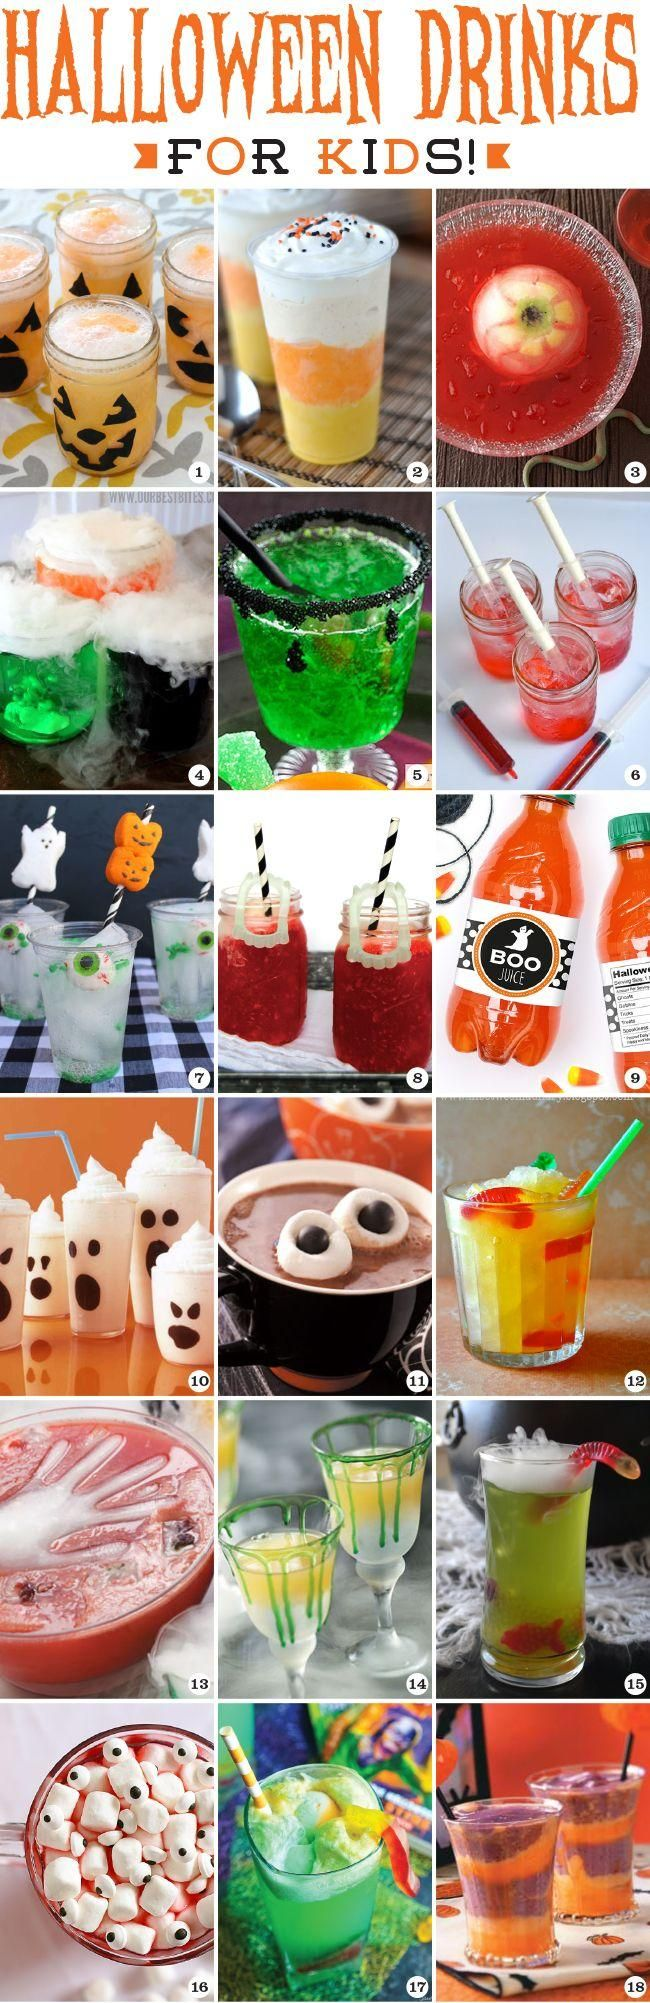 Halloween Drinks for Kids